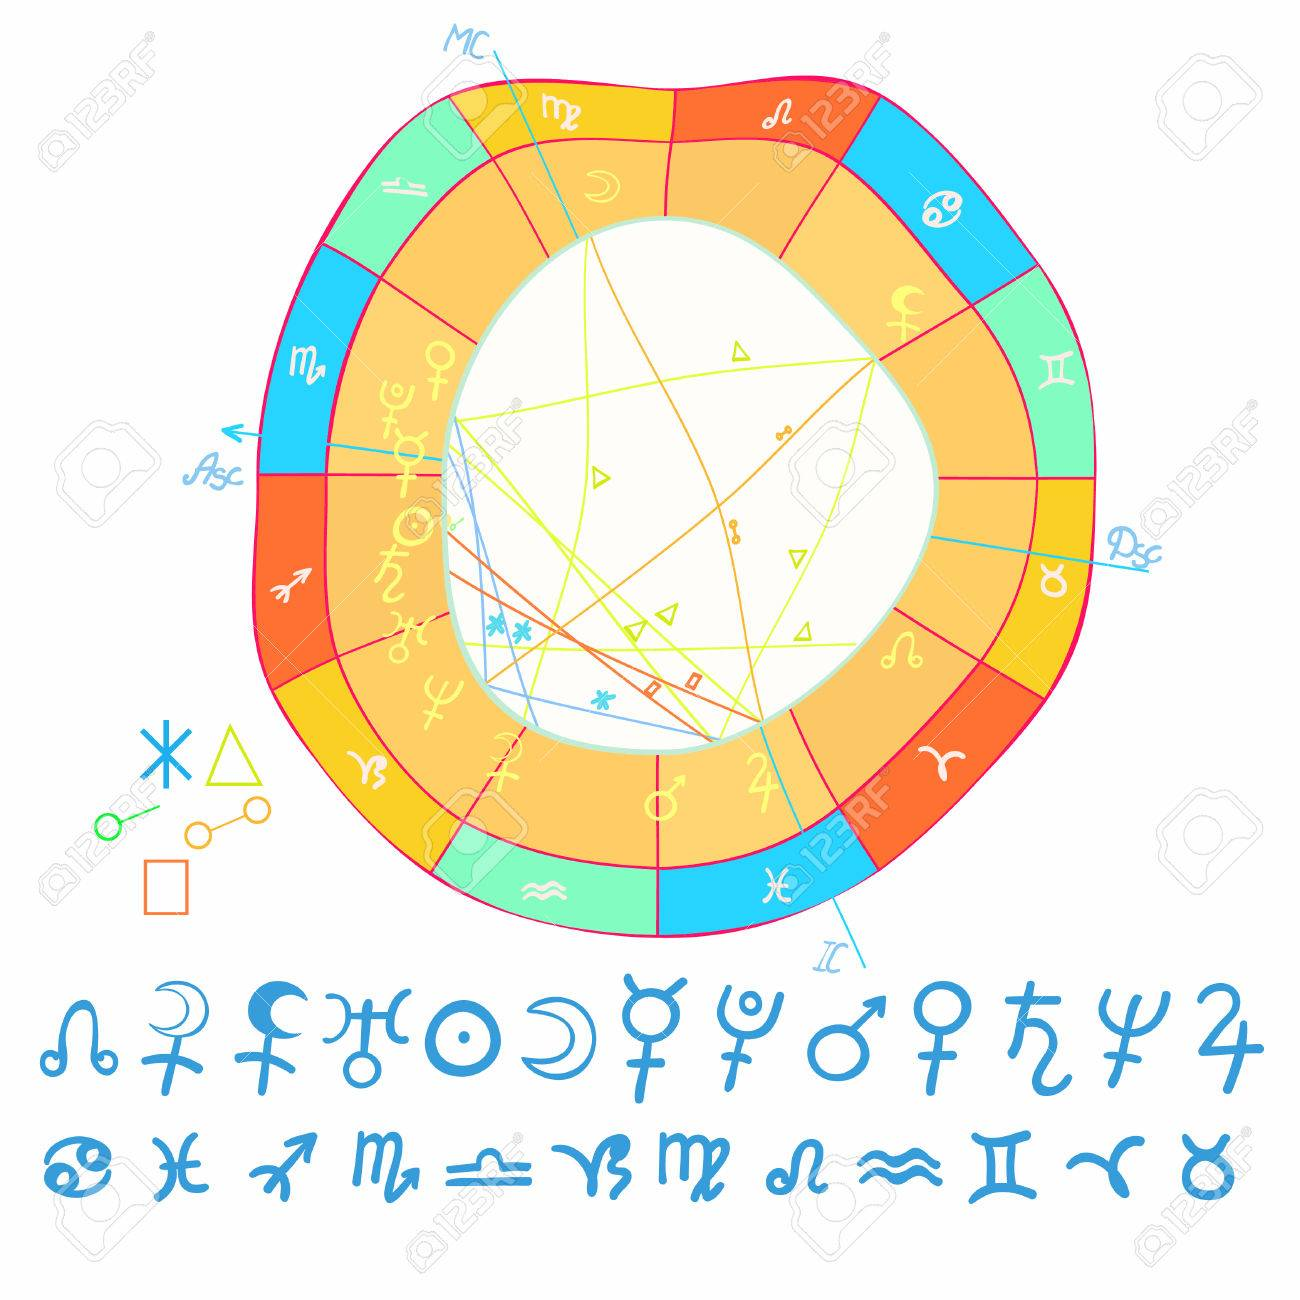 0800 astrology birth chart gallery free any chart examples 0800 astrology birth chart images free any chart examples 0800 astrology birth chart image collections free nvjuhfo Gallery